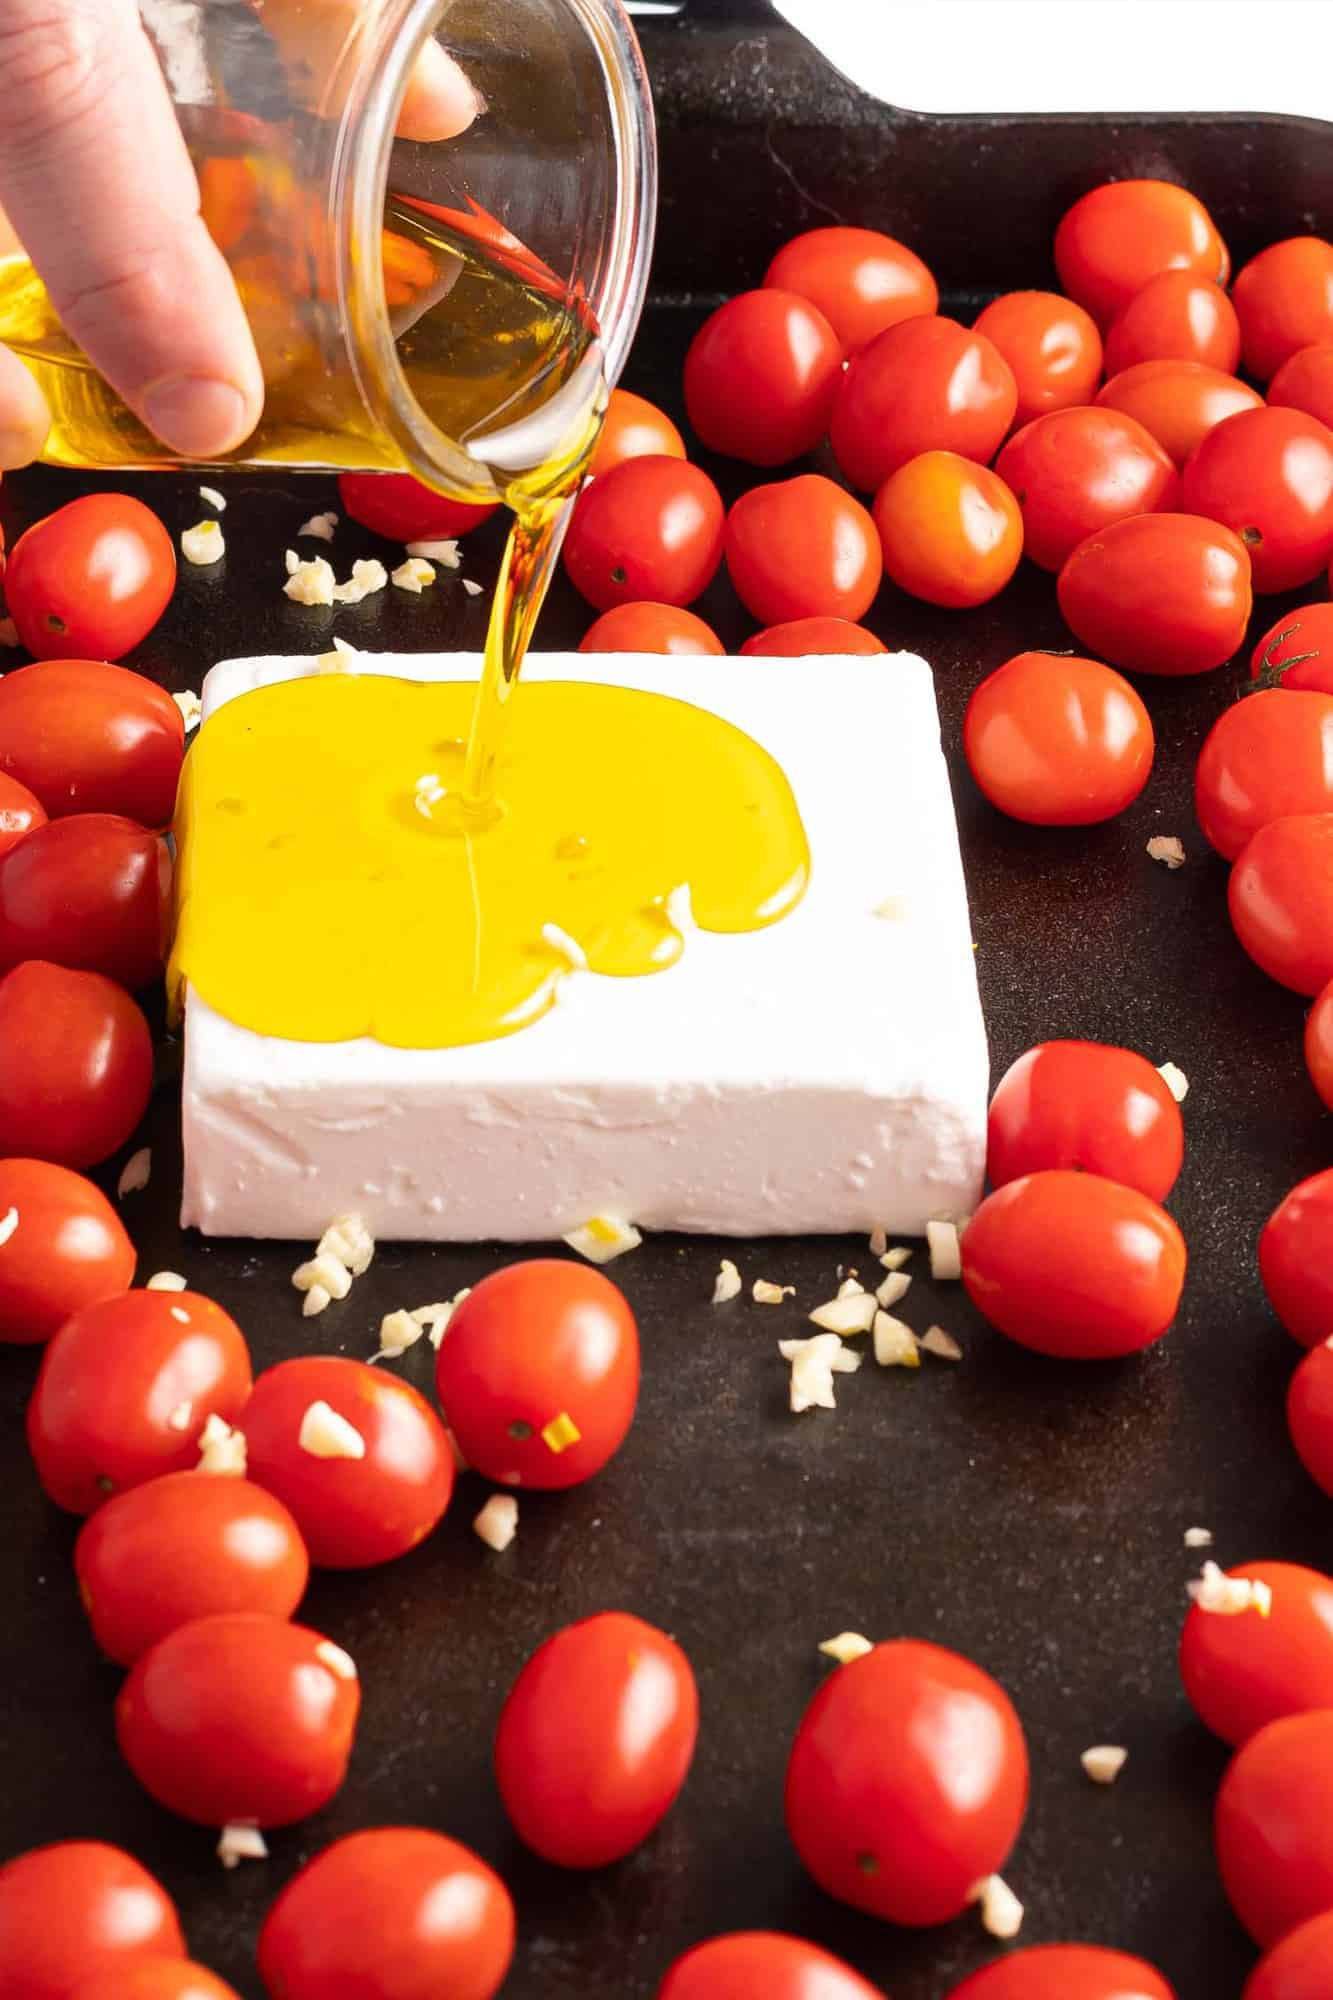 Olive oil being poured on a block of feta.